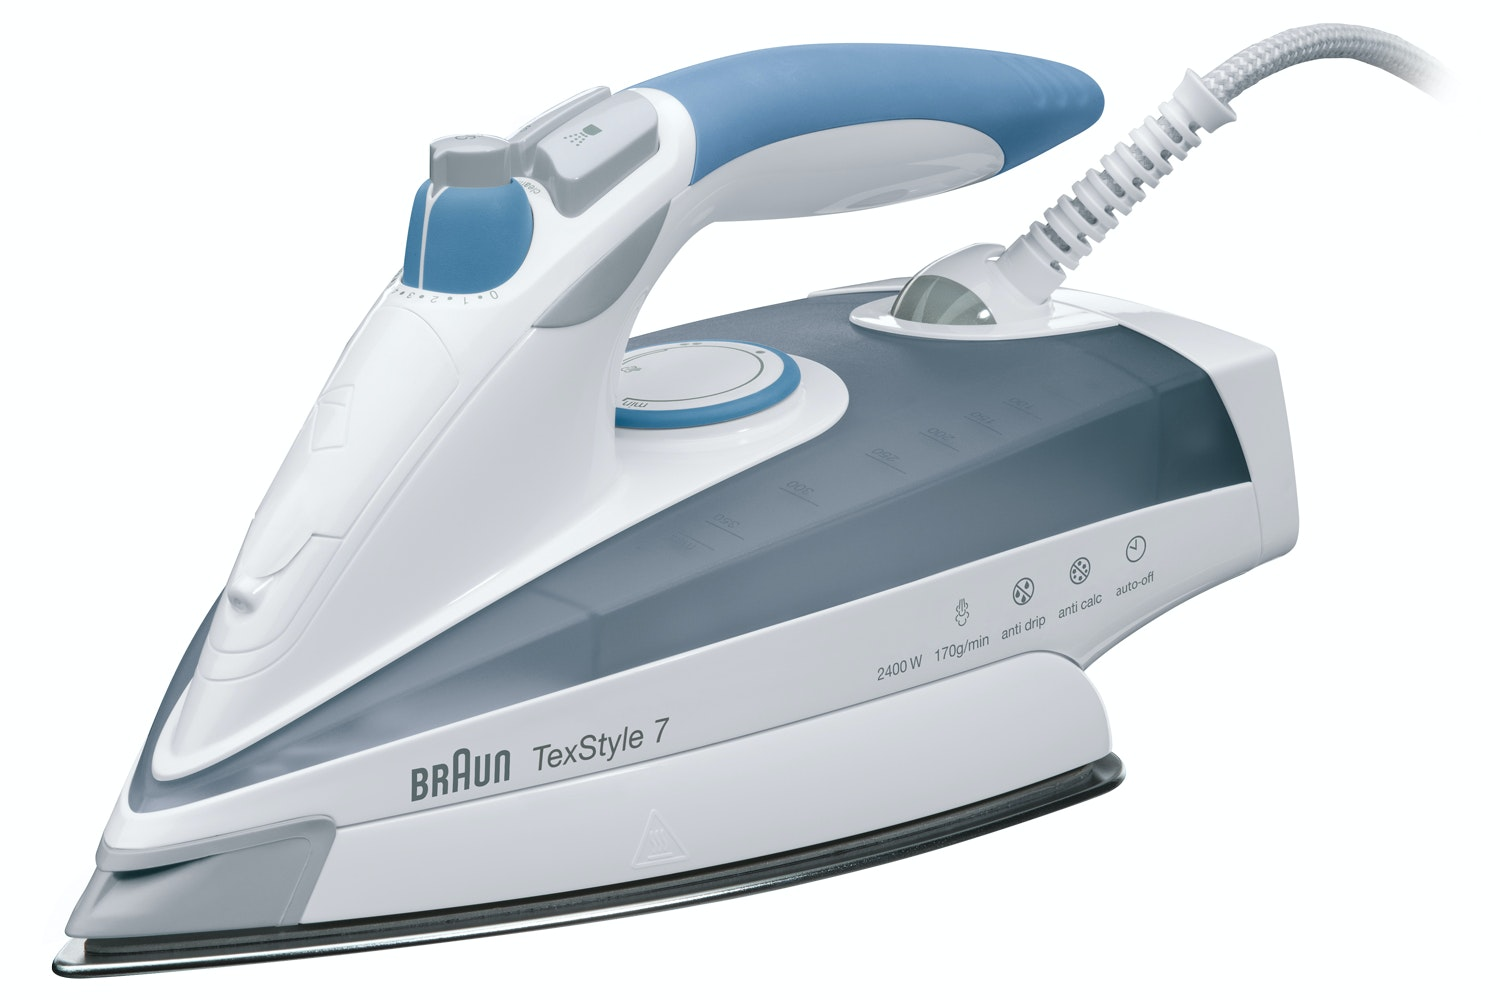 Braun 2400W Texstyle 7 Steam Iron | TS765A